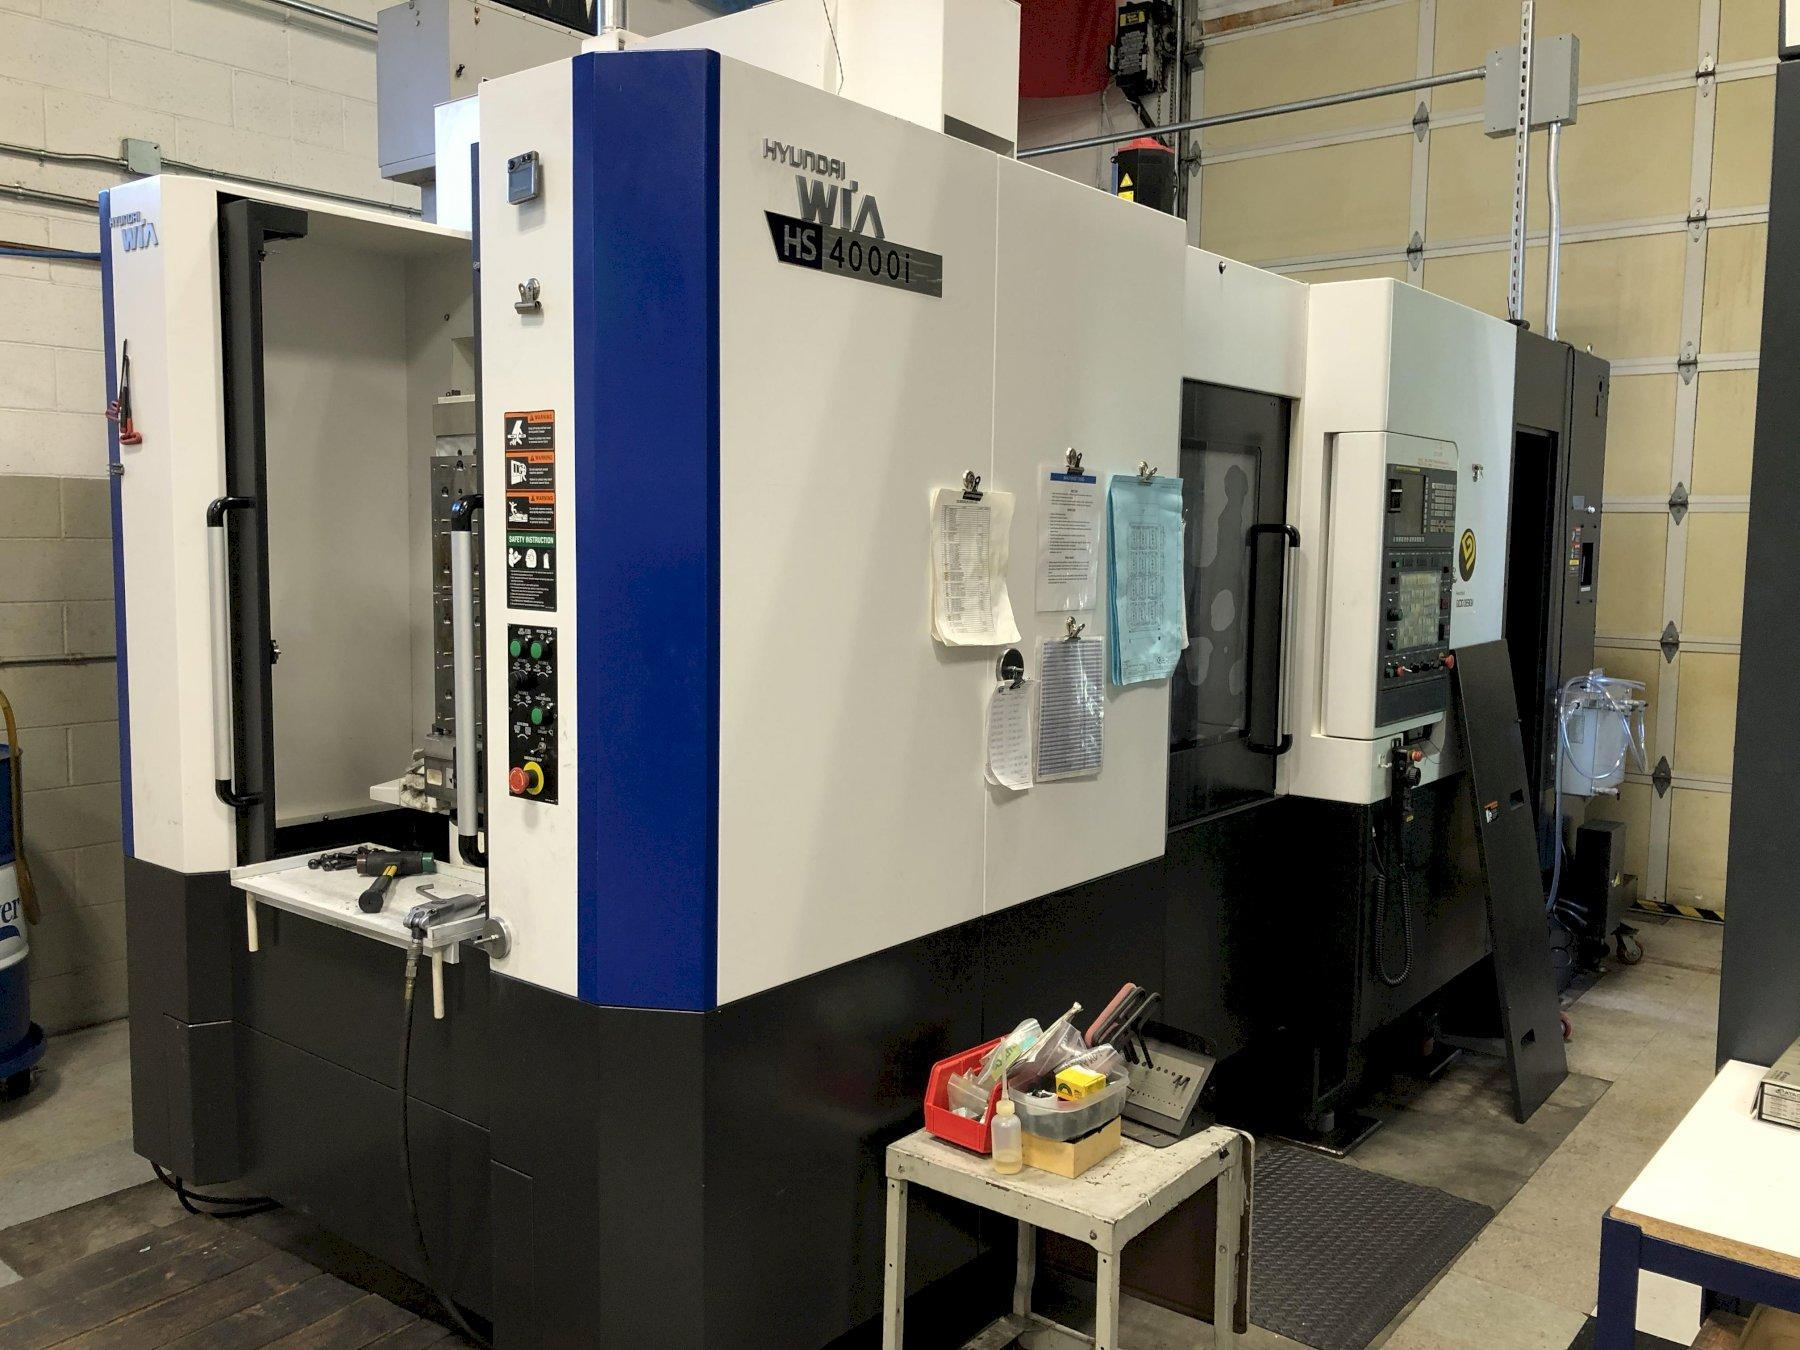 Hyundai Wia HS 4000i CNC HMC 2014 with Fanuc 31iA CNC Control, Full 4th Axis, Big Plus CAT 40 Spindle Taper, 80-ATC, High Pressure Coolant Thru Spindle, Remote MPG, Rigid Tapping, and Chip Conveyor.